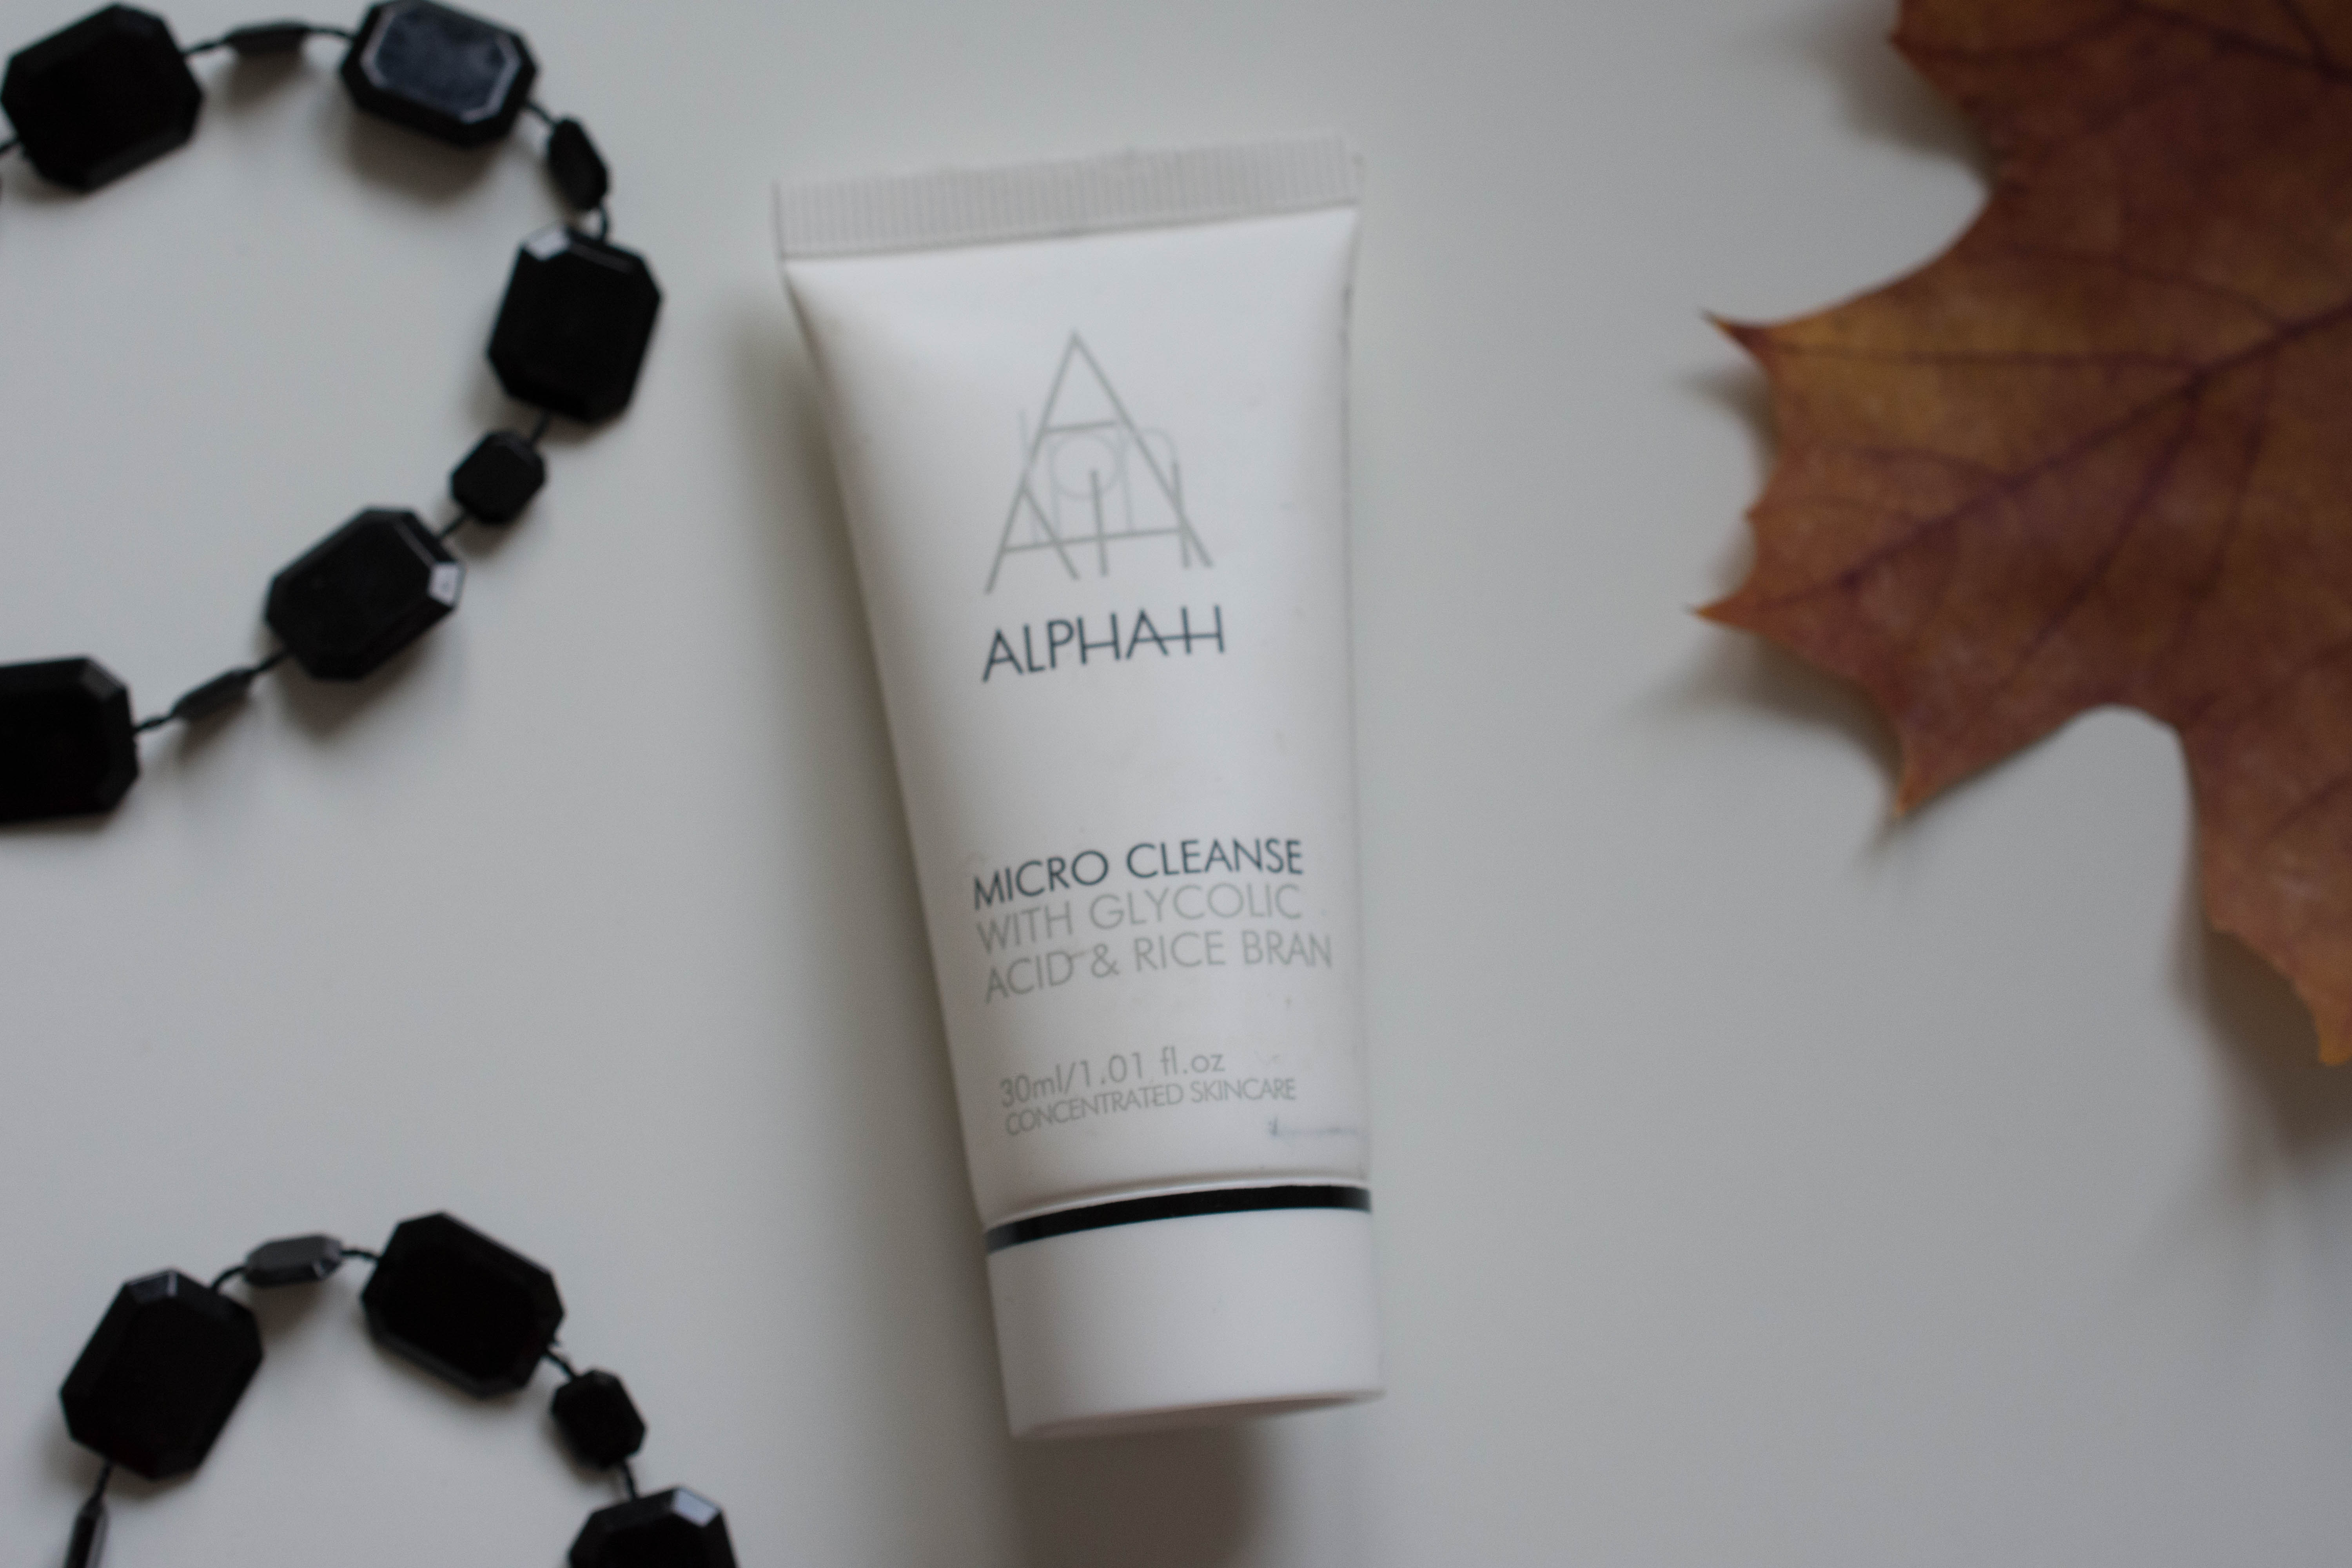 Alpha-H Micro Cleanse with glycol acid & rice bran